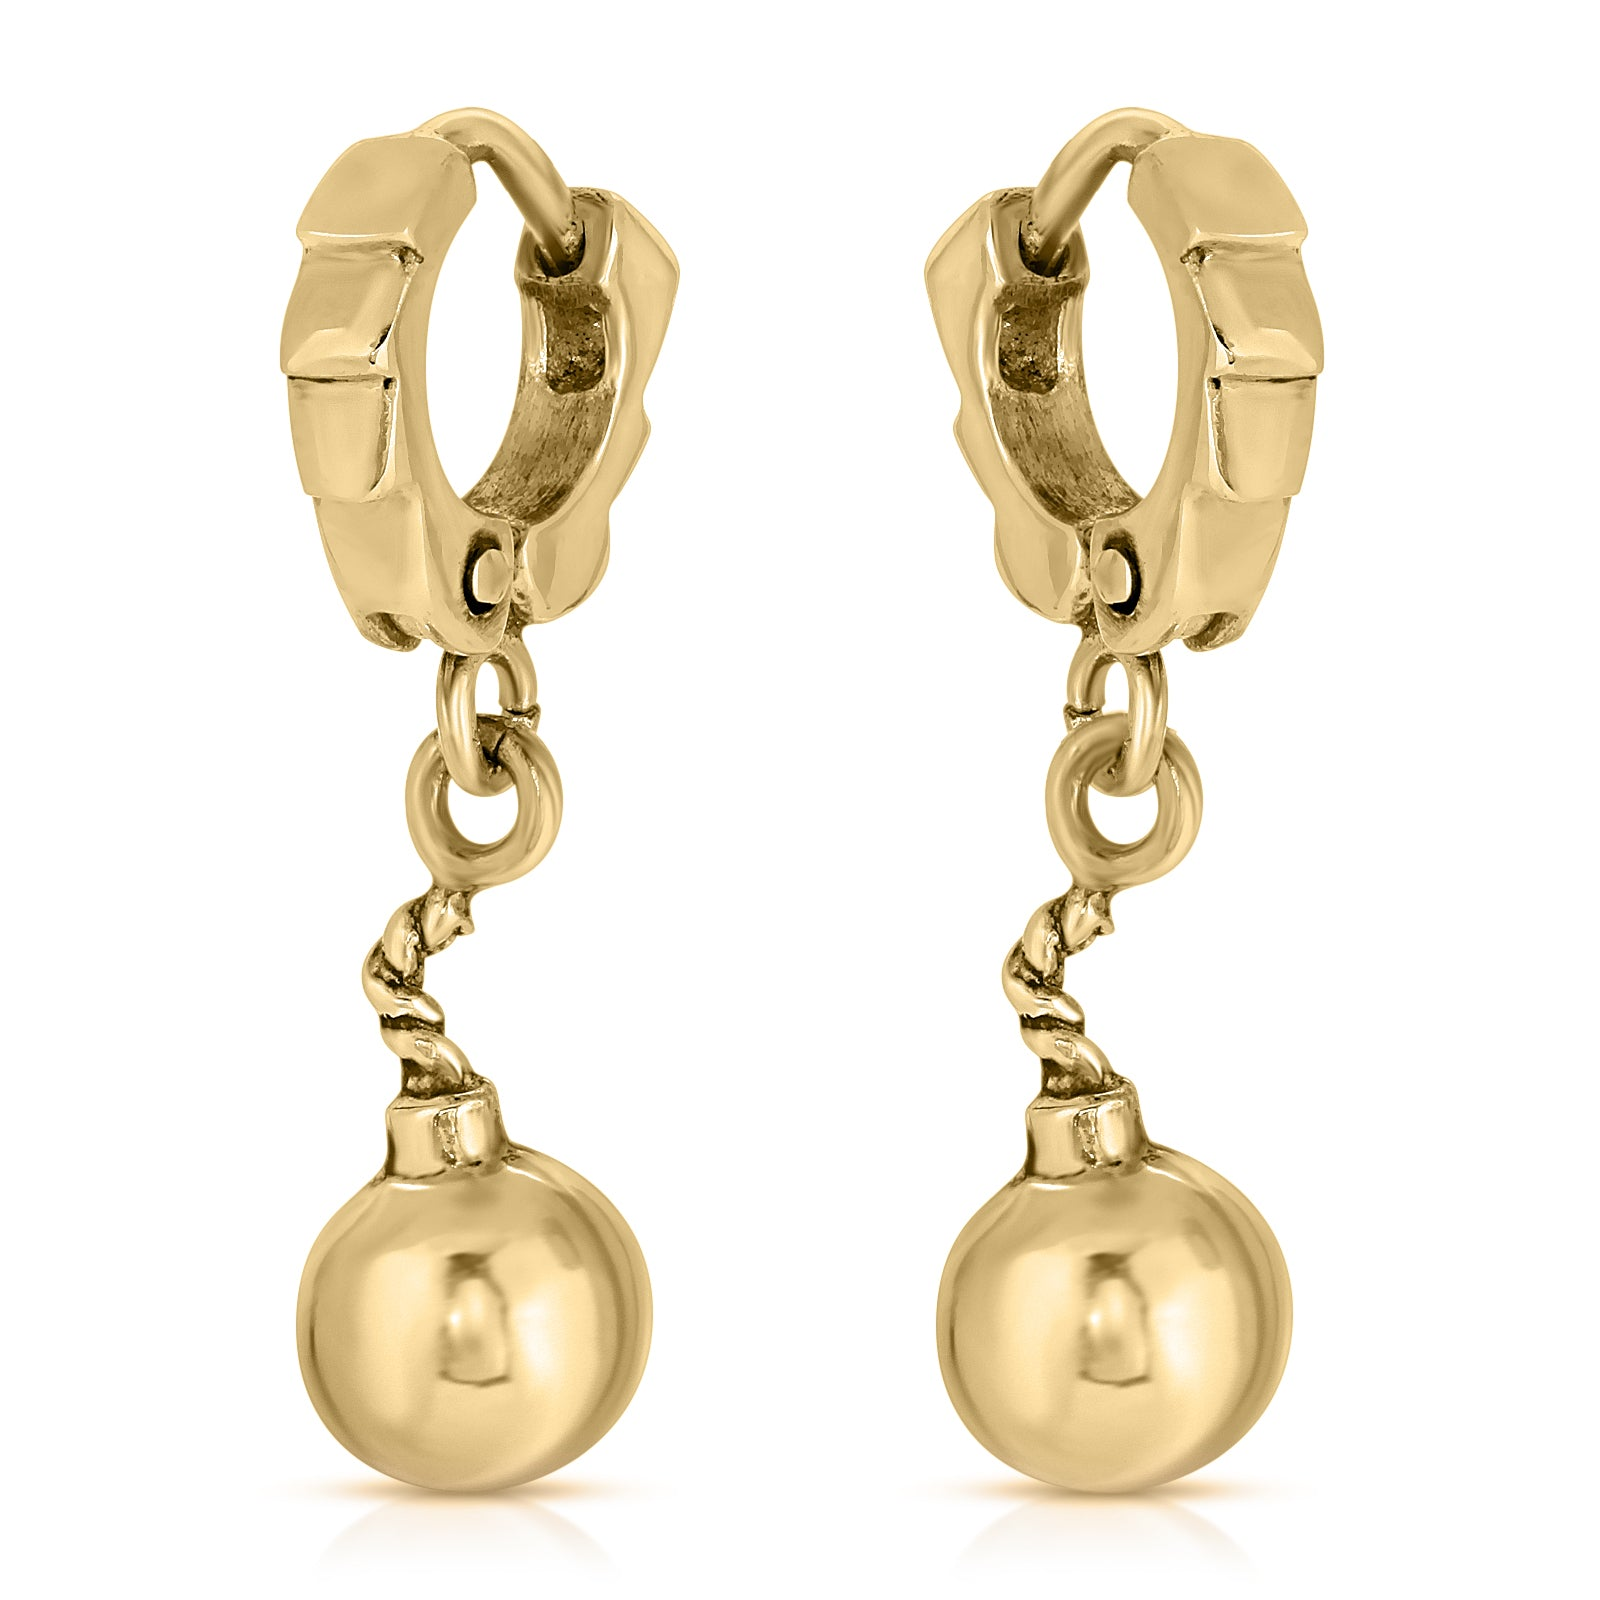 The W Brothers Premium Grade A 925 Sterling Silver Bomb Cuff Earrings, perfect for a fashionable statement for men and women's jewelry accessory. Available in silver, gold, rose gold, black nickel at www.thewbros.com